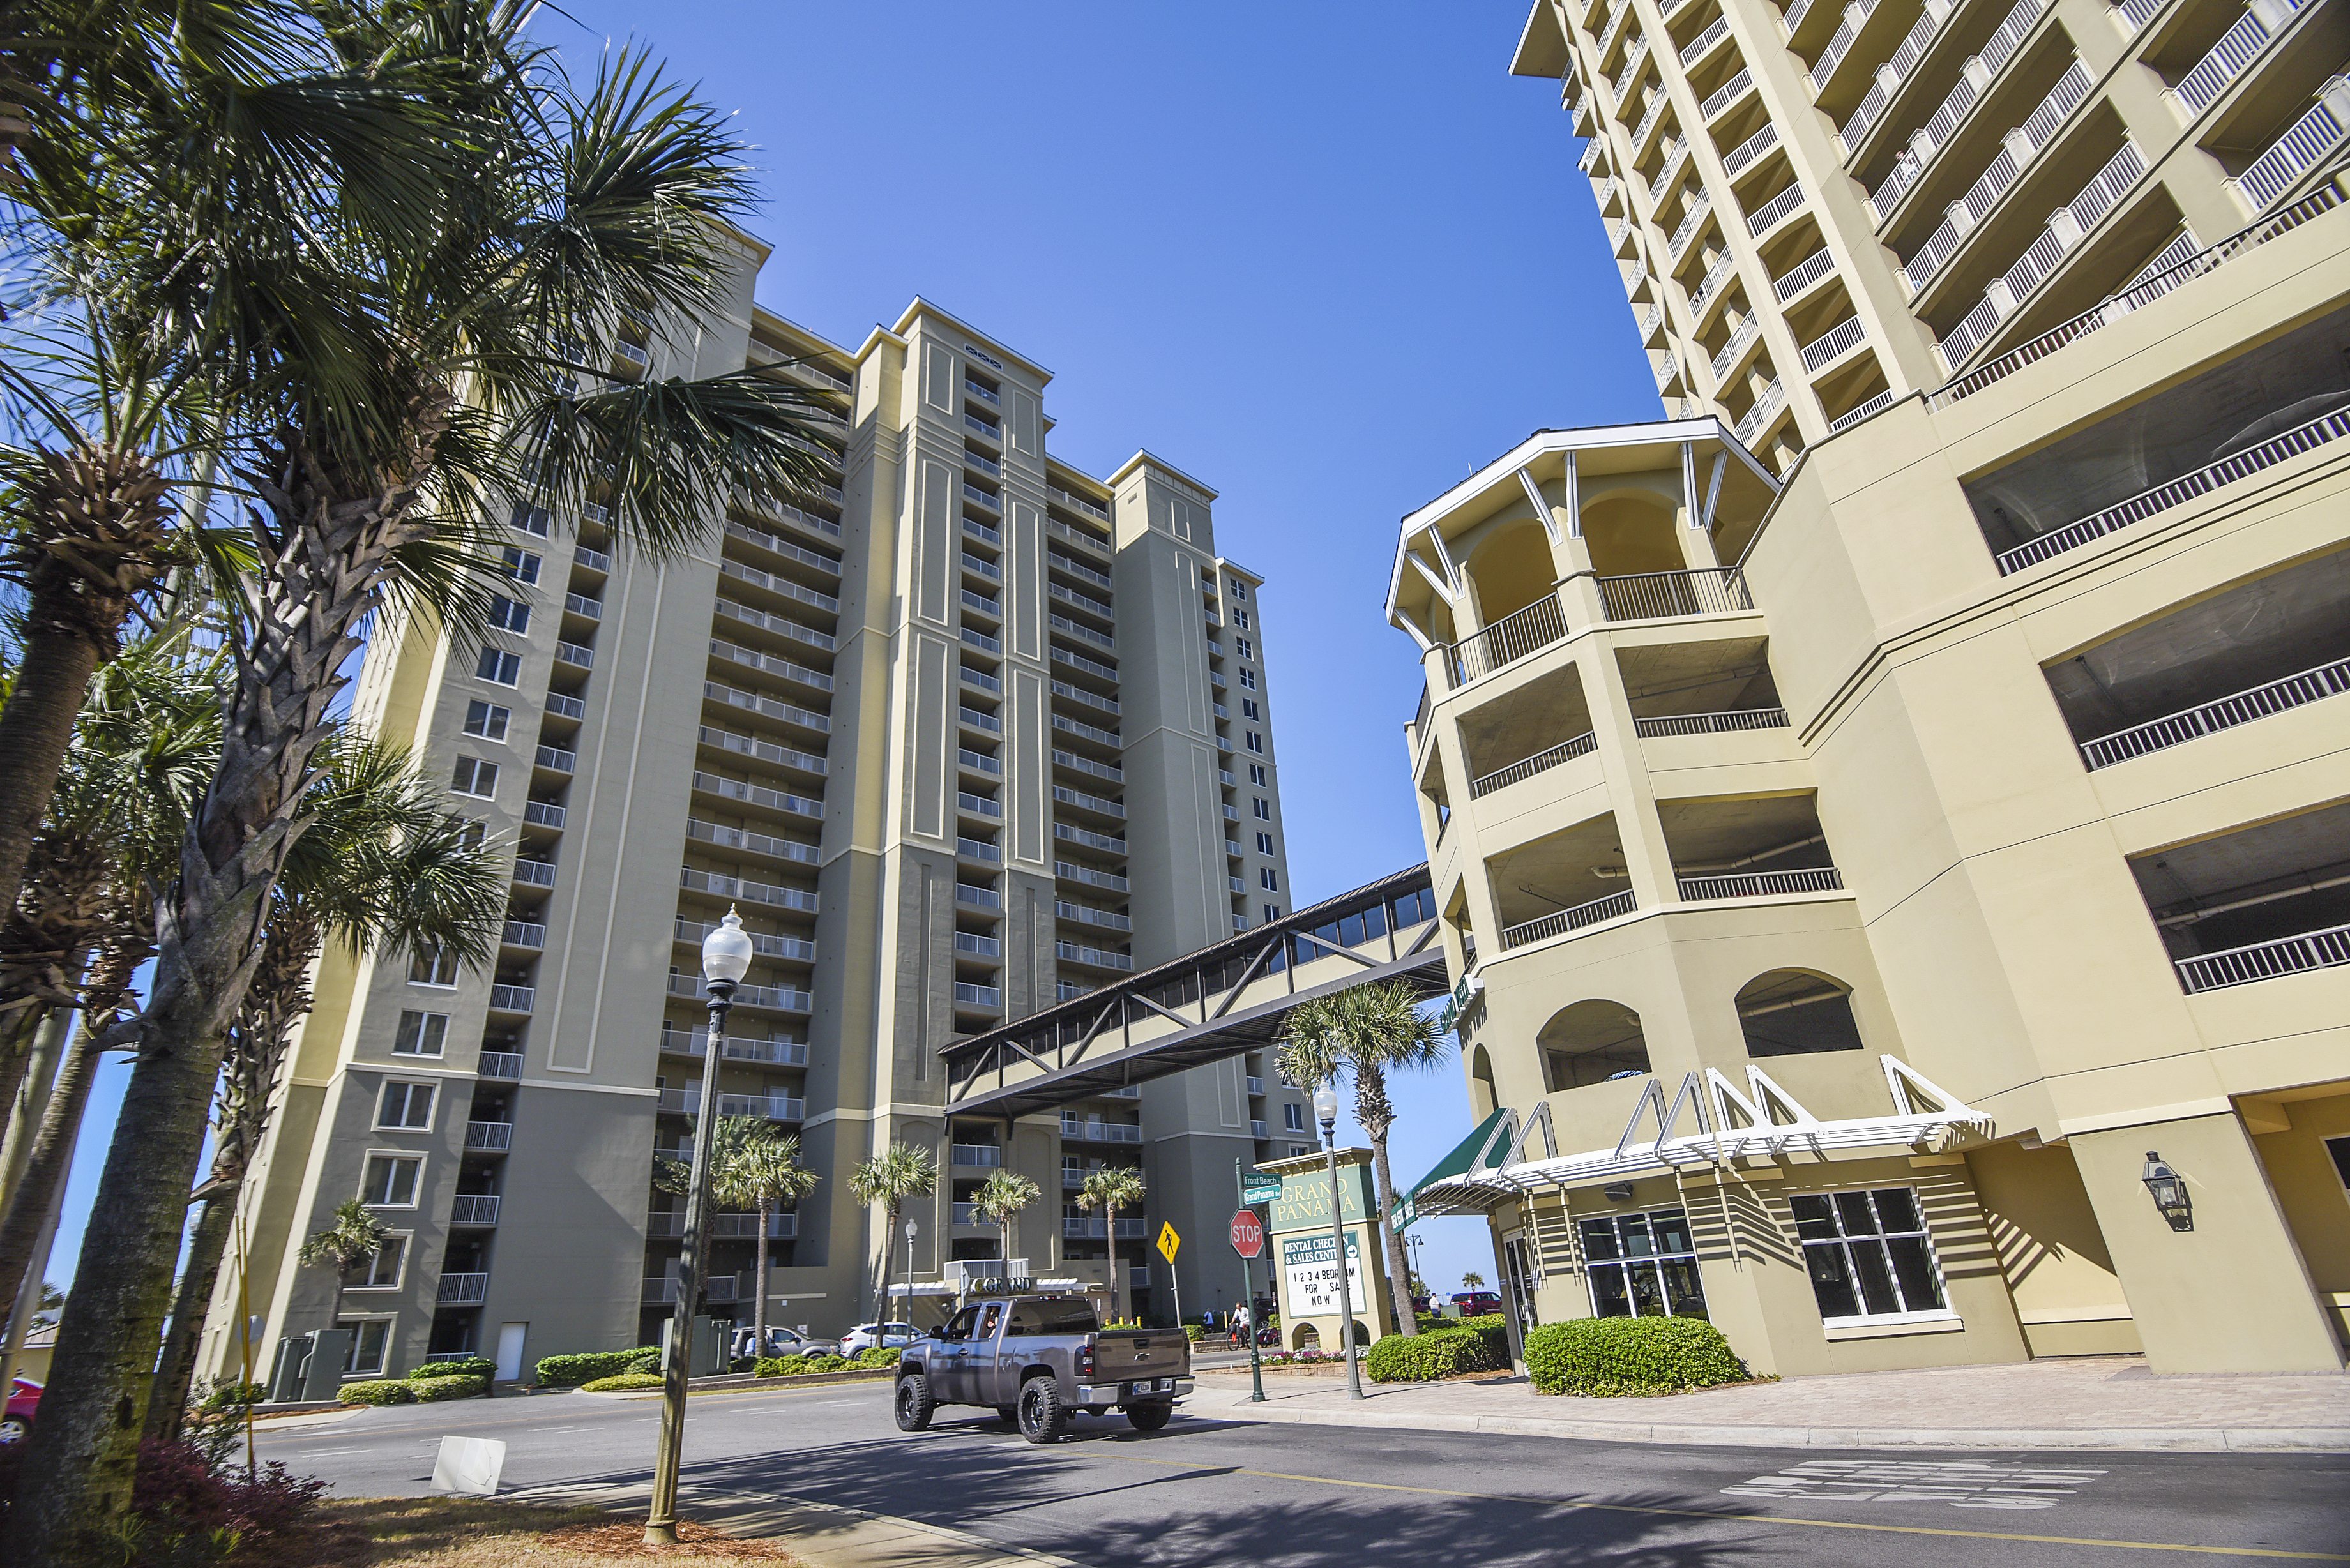 Panama City Beach Condo Grand Panama 1808